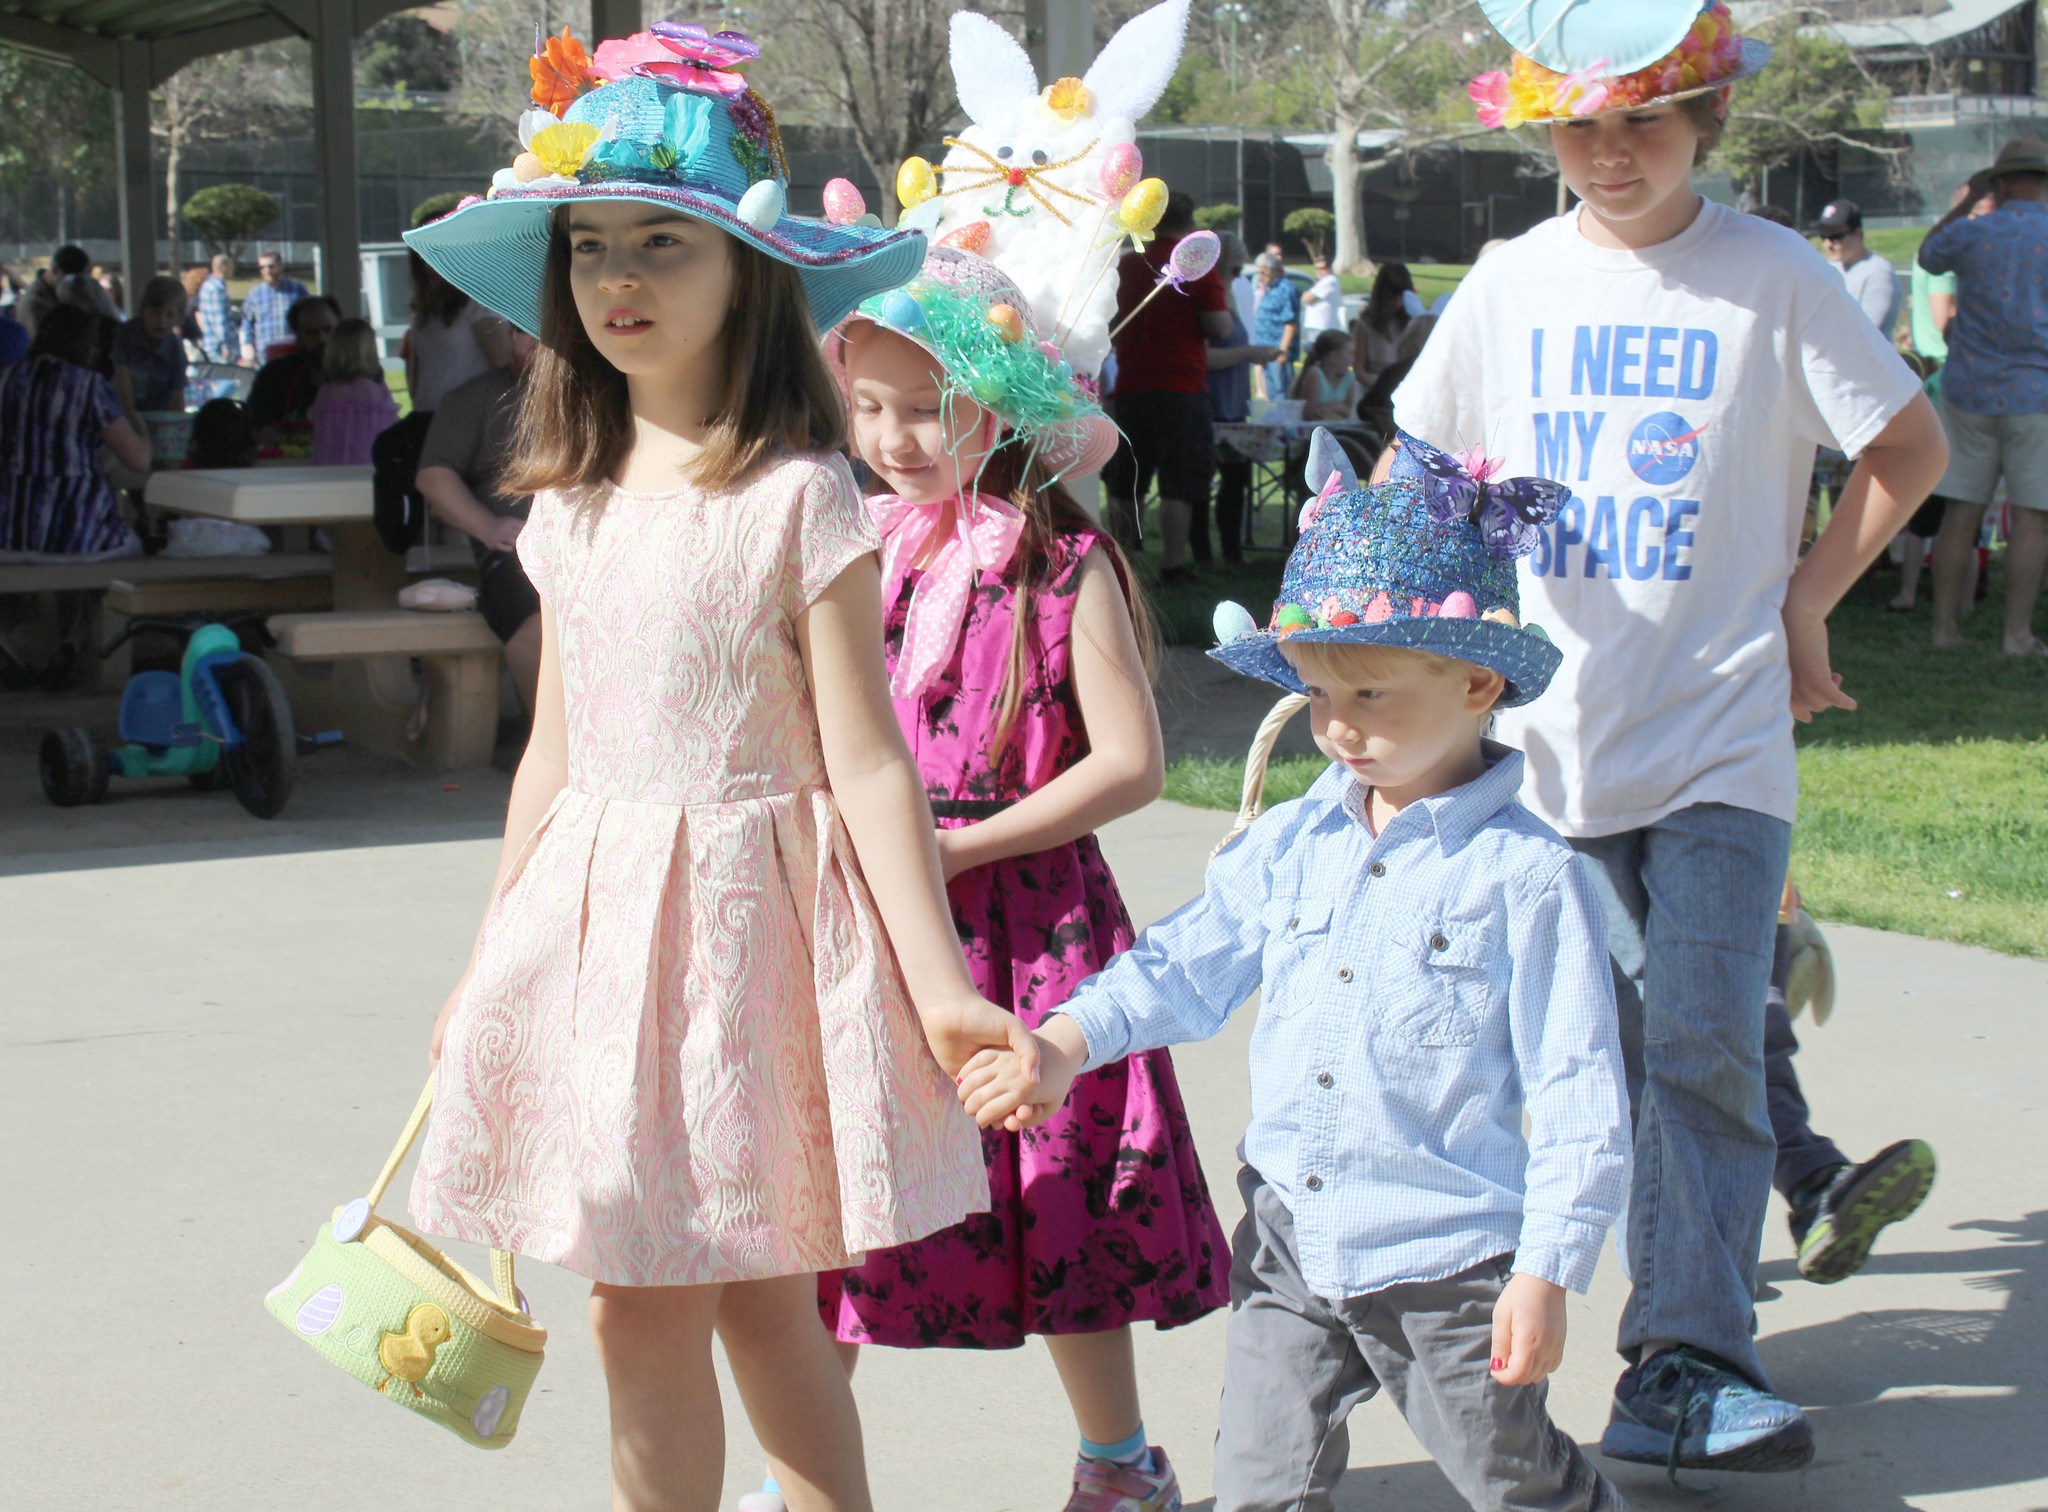 Andre Reese holds his sister Anika's hand as they participate in the Easter Bonnet Parade. Also pictured are Raelynne Larsson and Audie O'Neal.